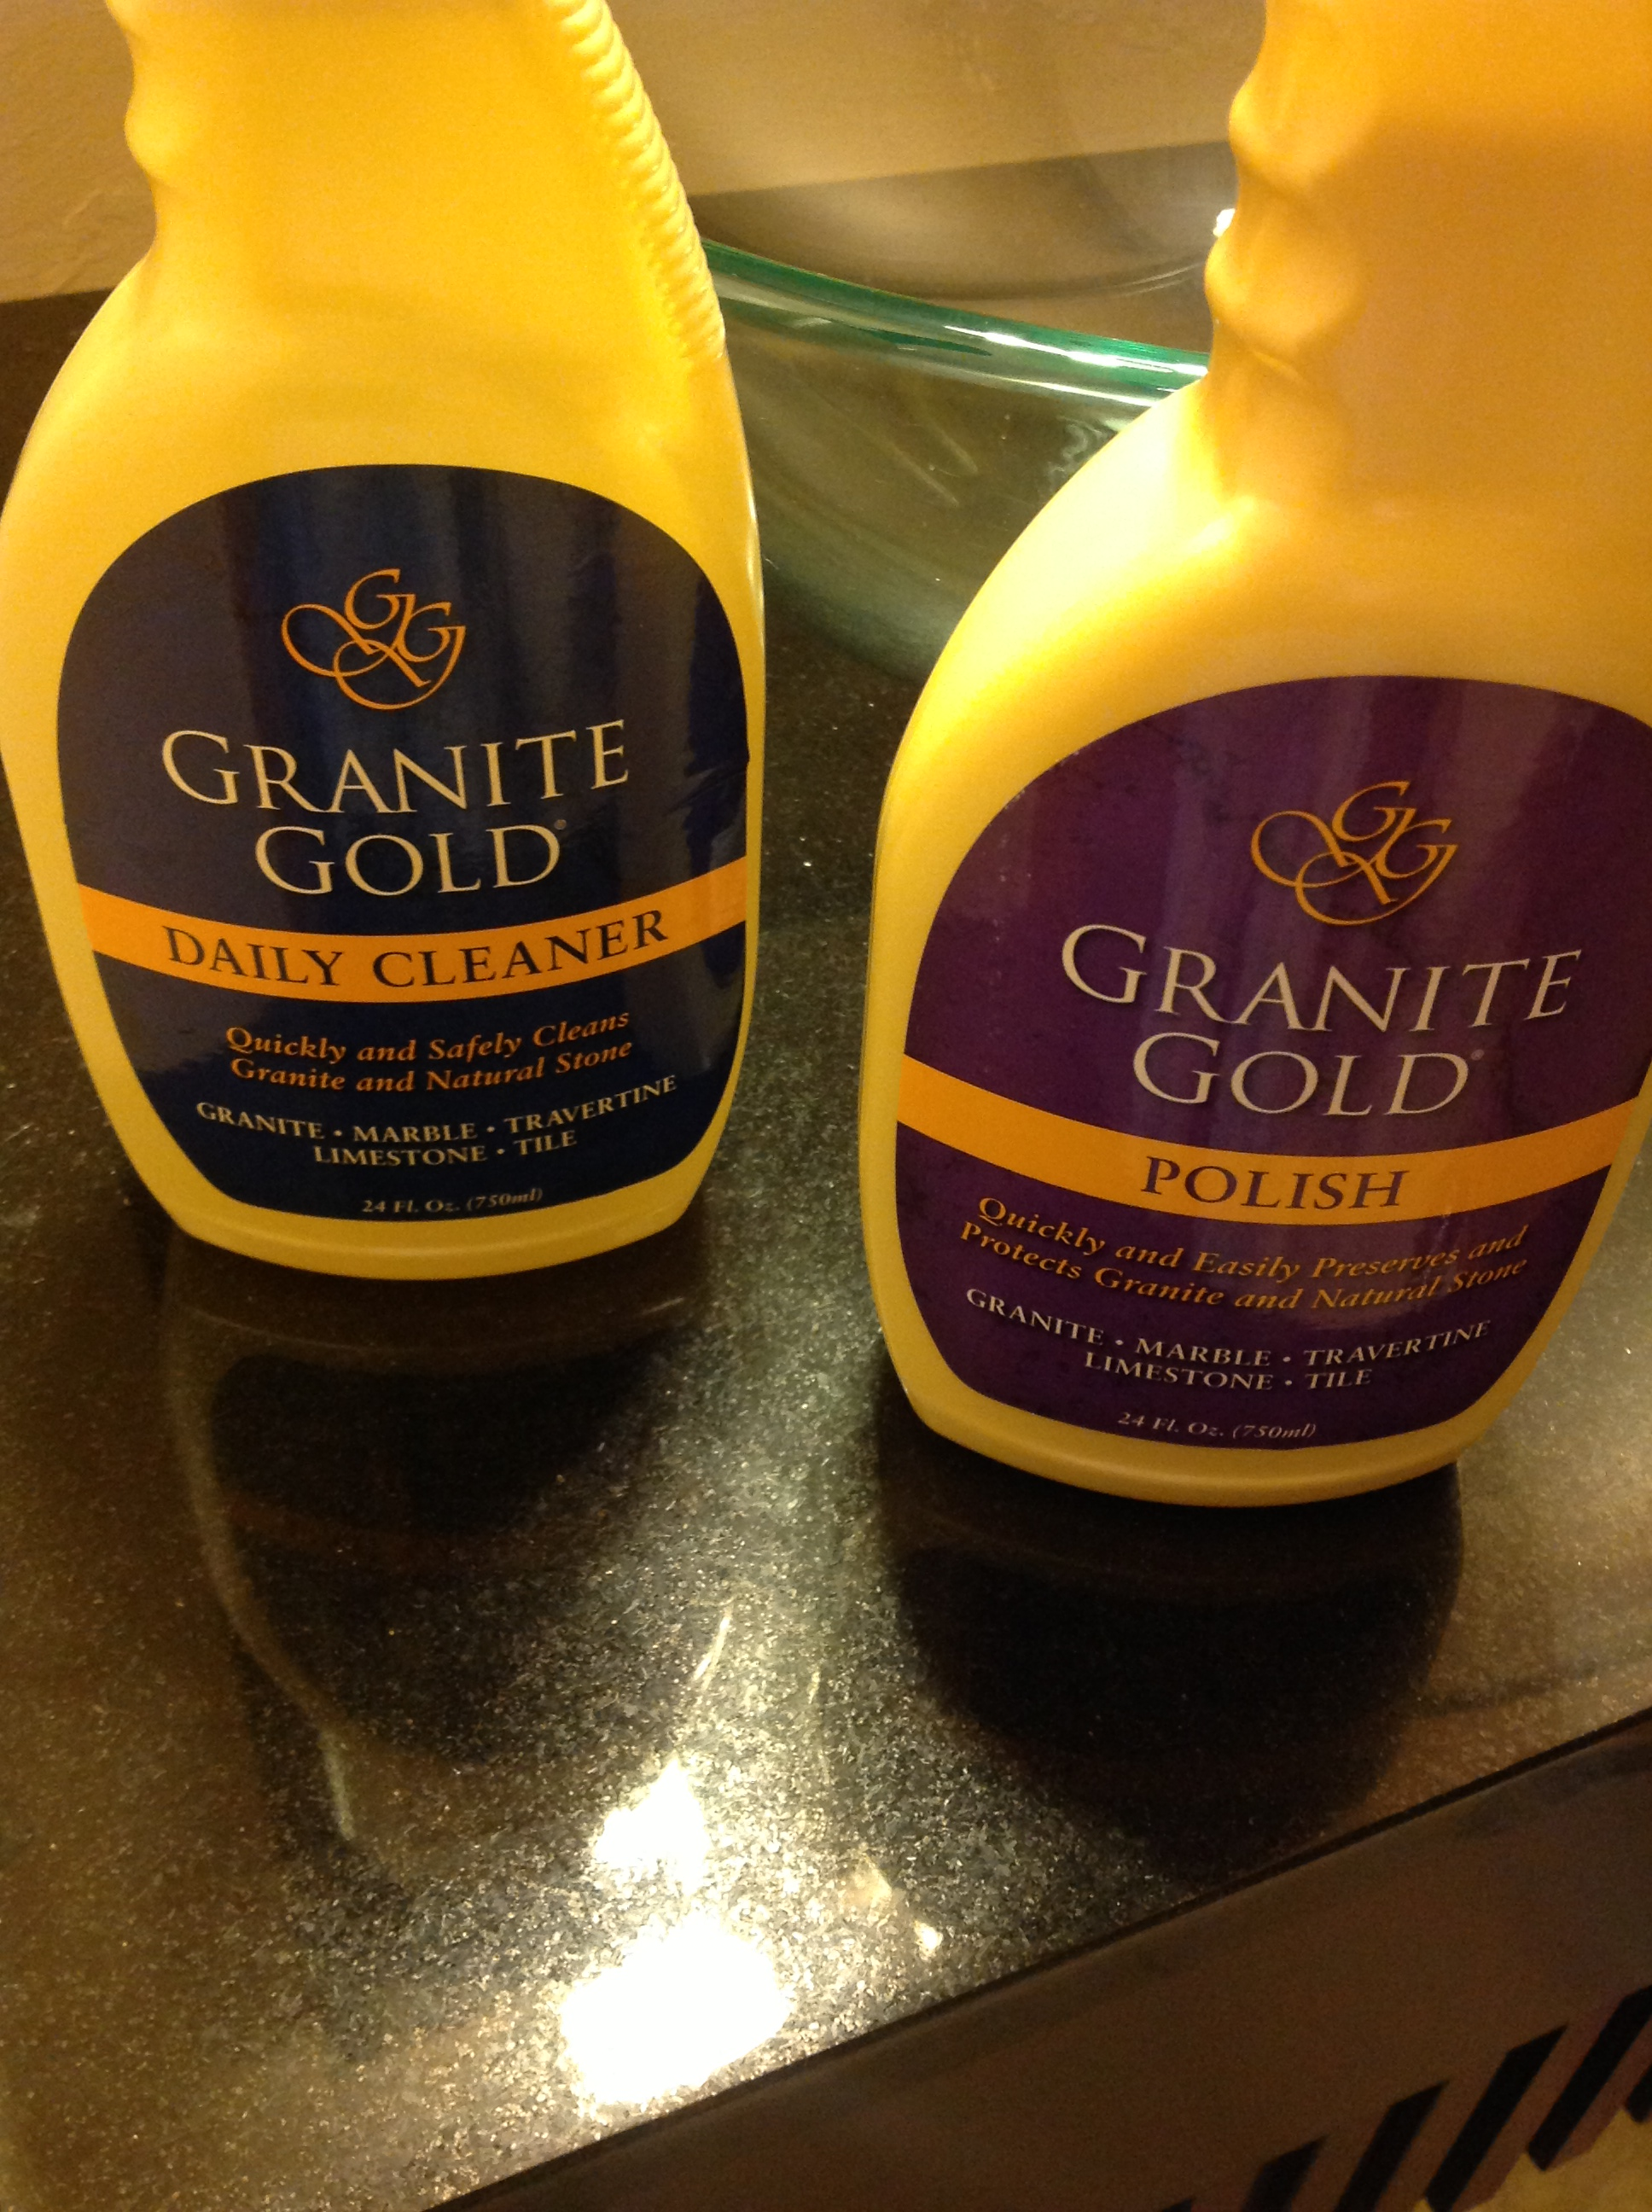 Giveaway Finding A Great Cleaner For Your Granite Is Like Finding Gold Granite Gold Us And Canada Ends 7 9 Kelly S Lucky You